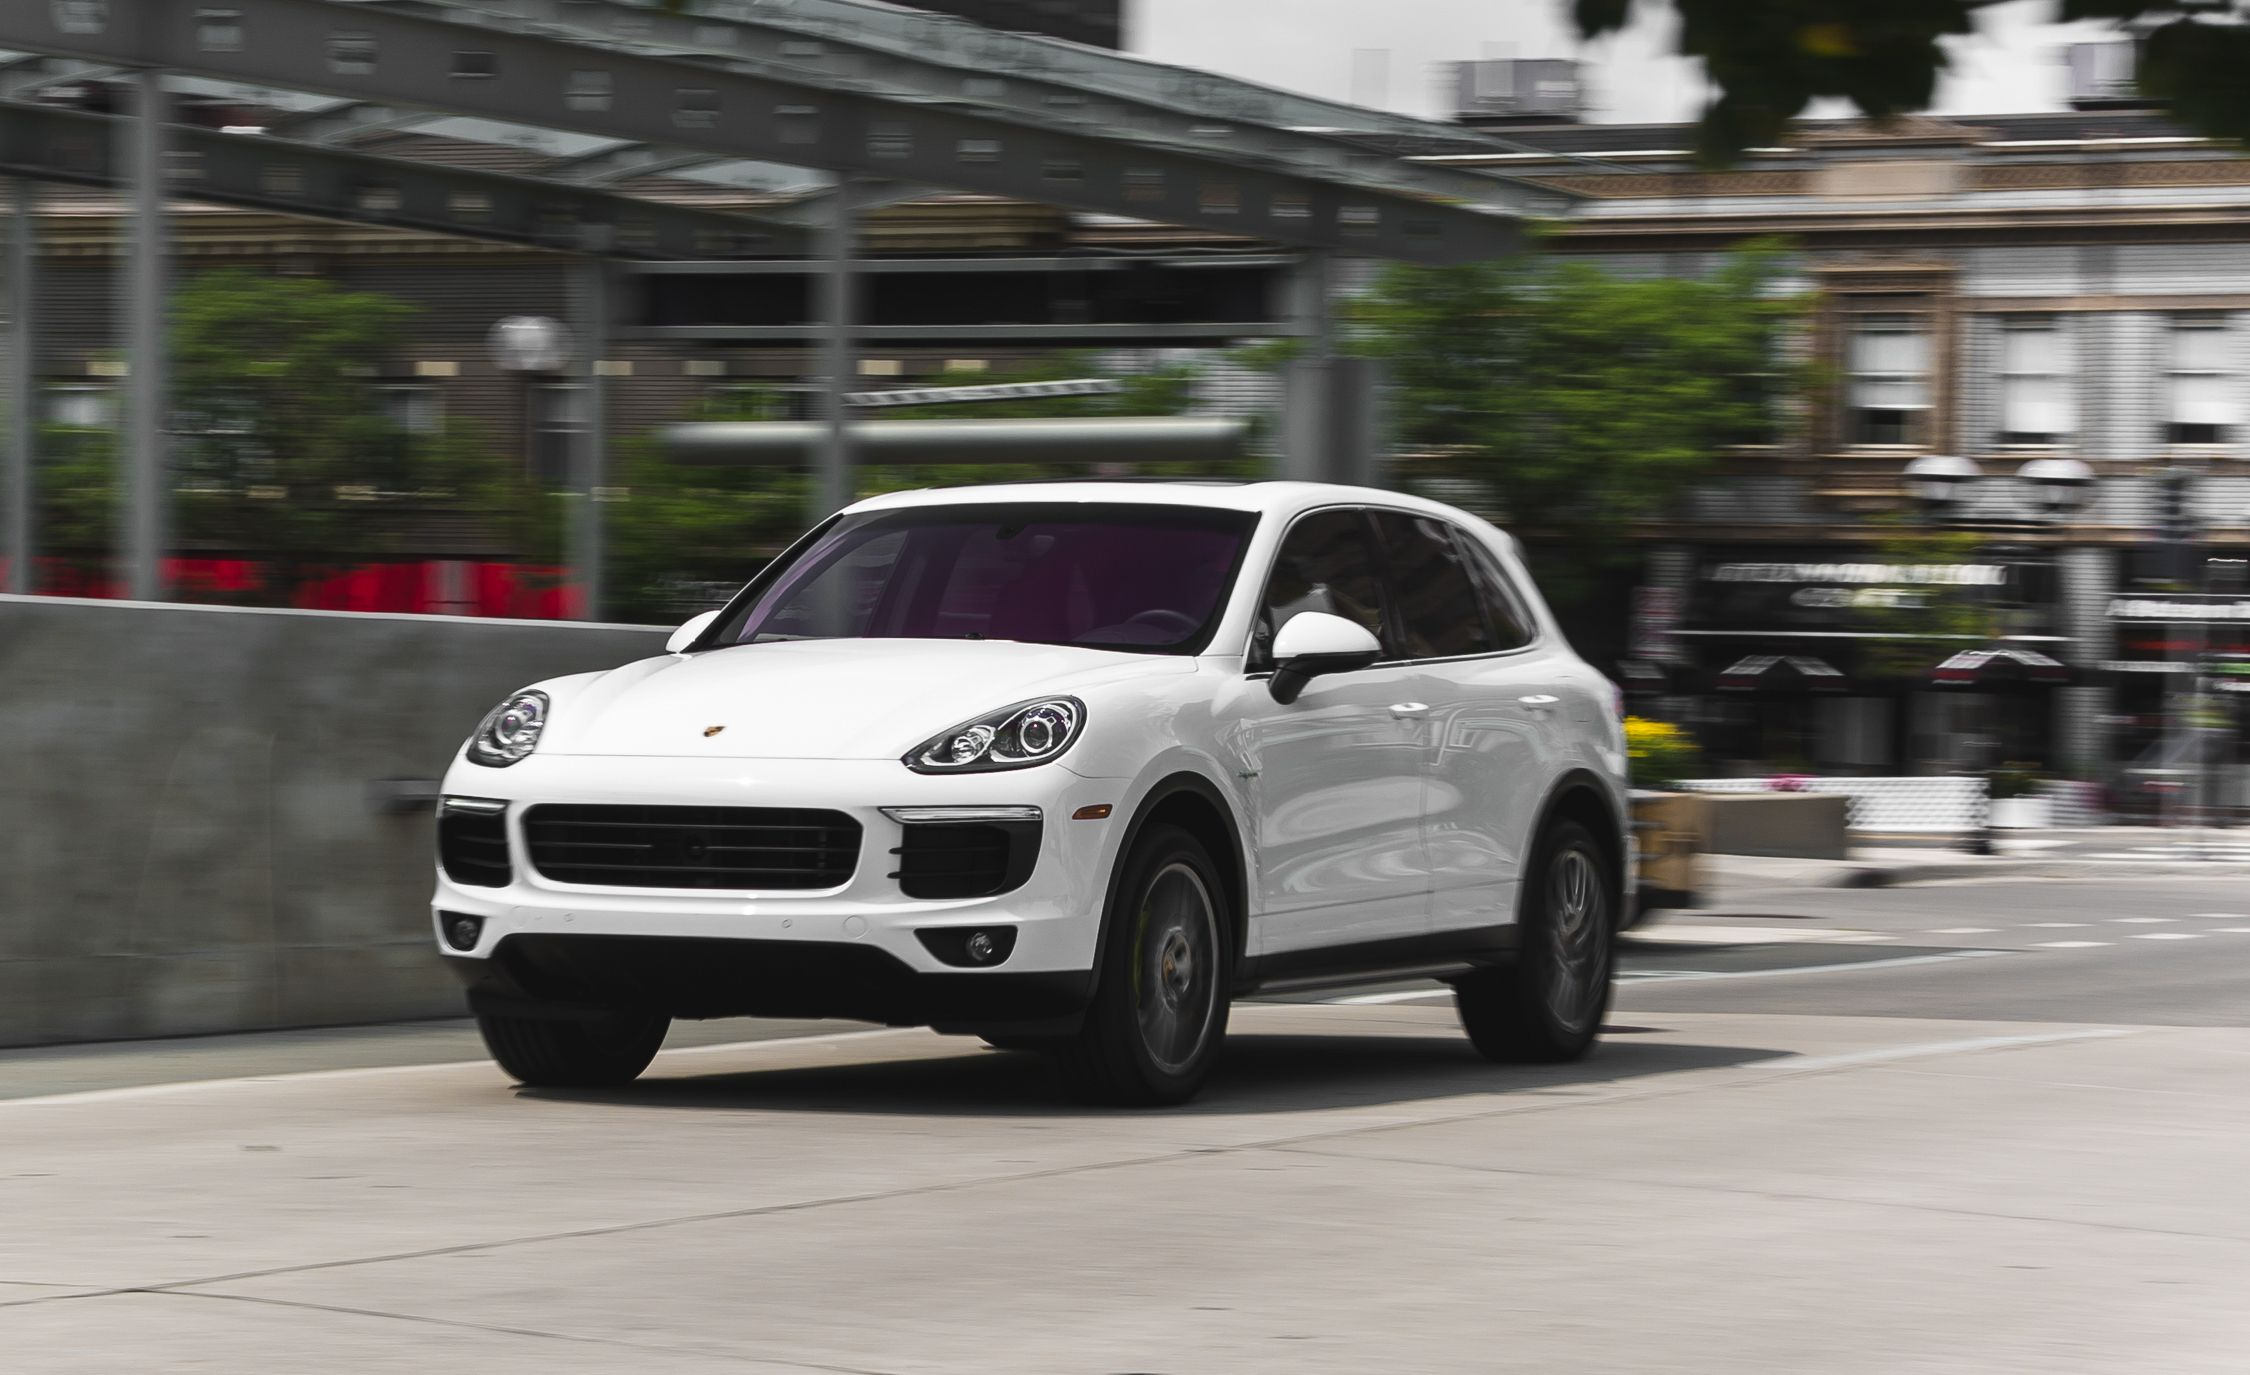 2015 porsche cayenne s e hybrid test review car and driver